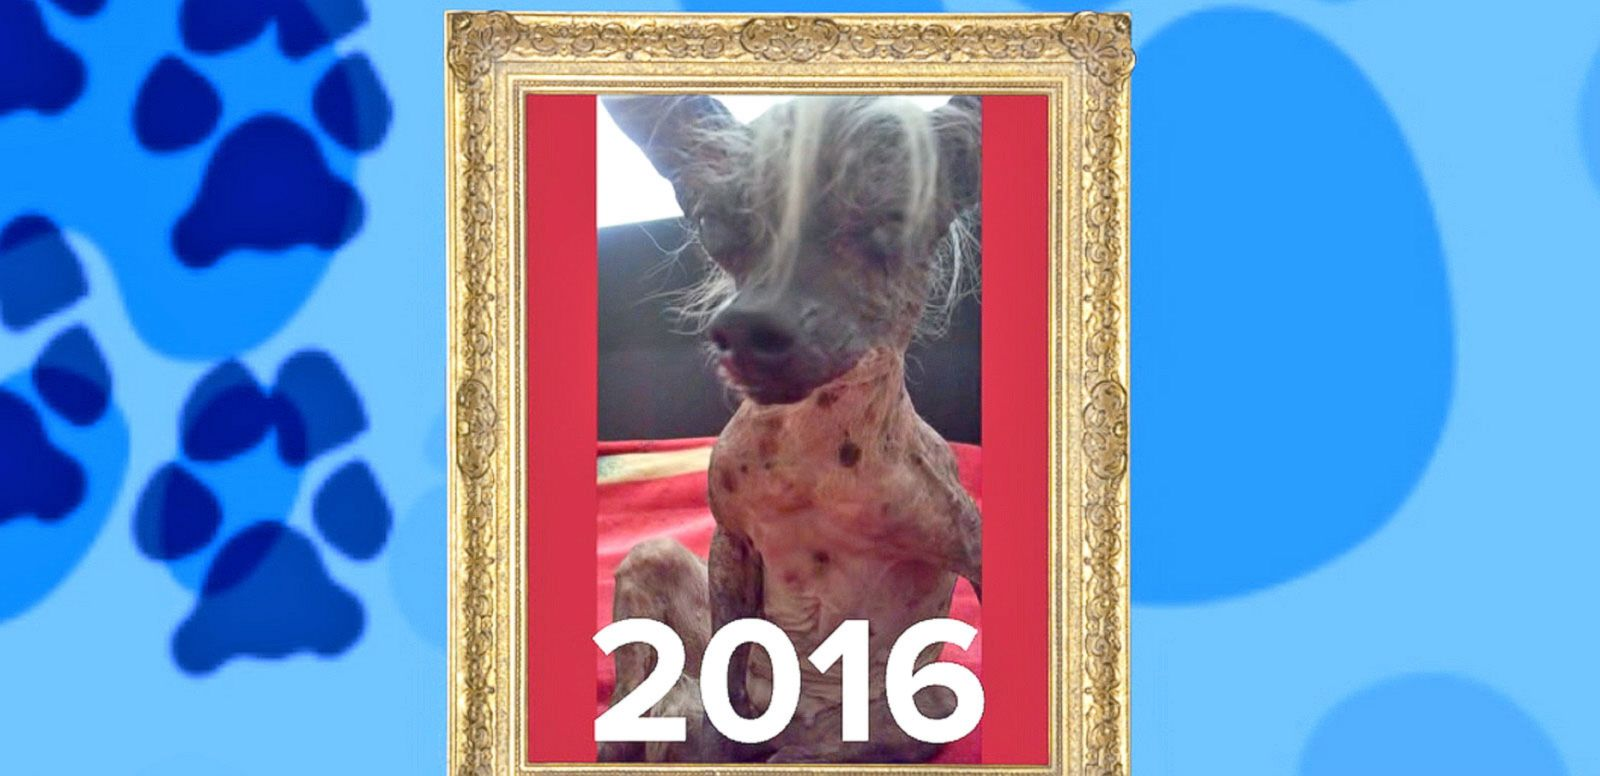 VIDEO: 2016 Ugliest Dog Competition Winner Announced